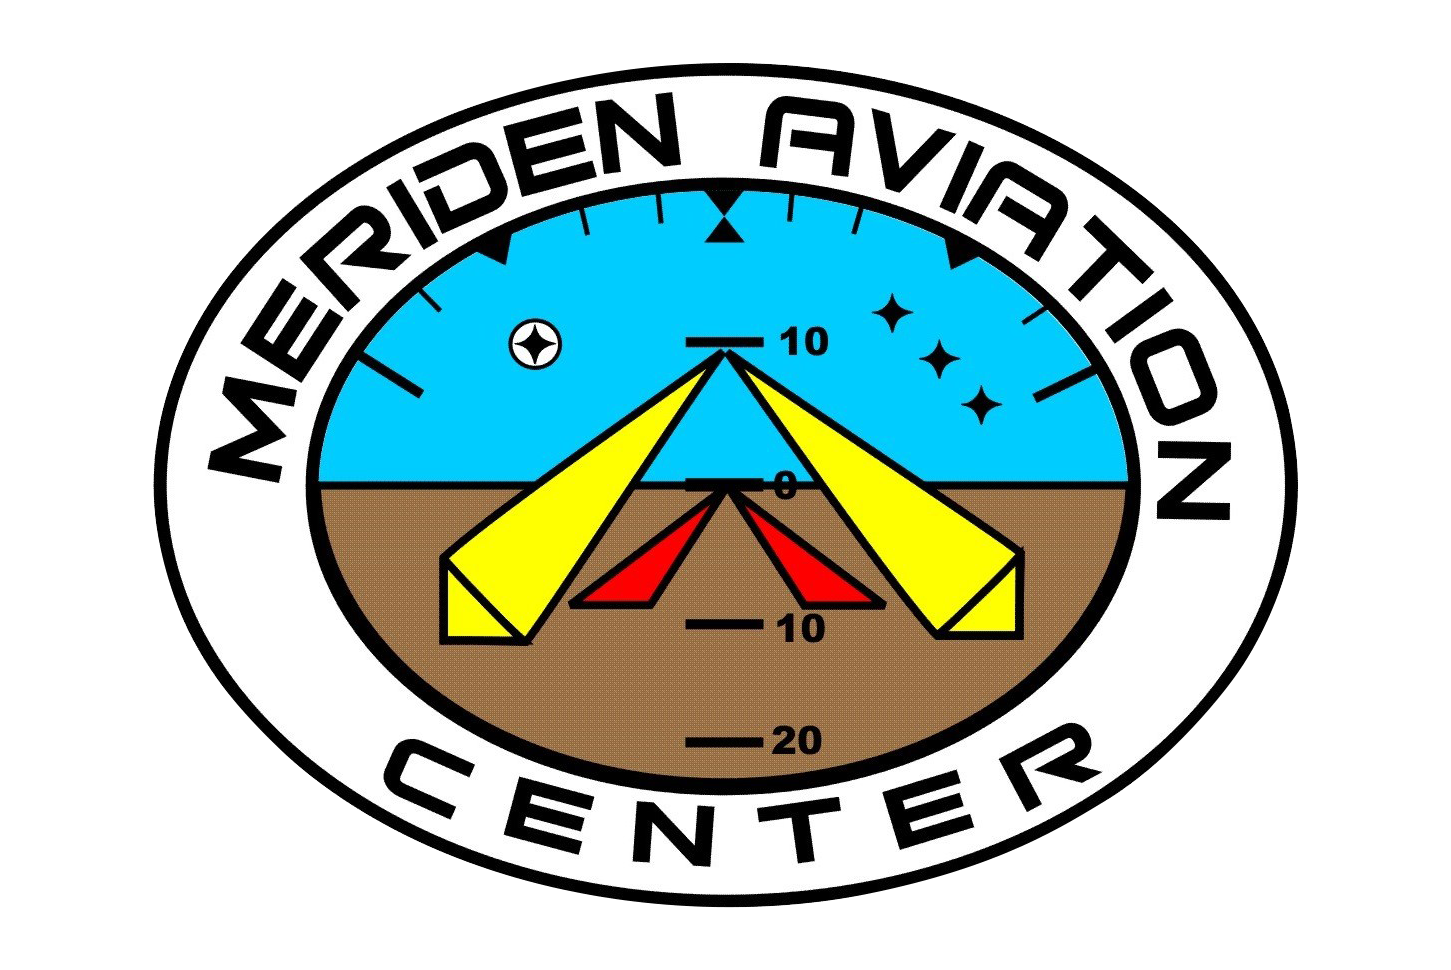 Meriden Aviation Center